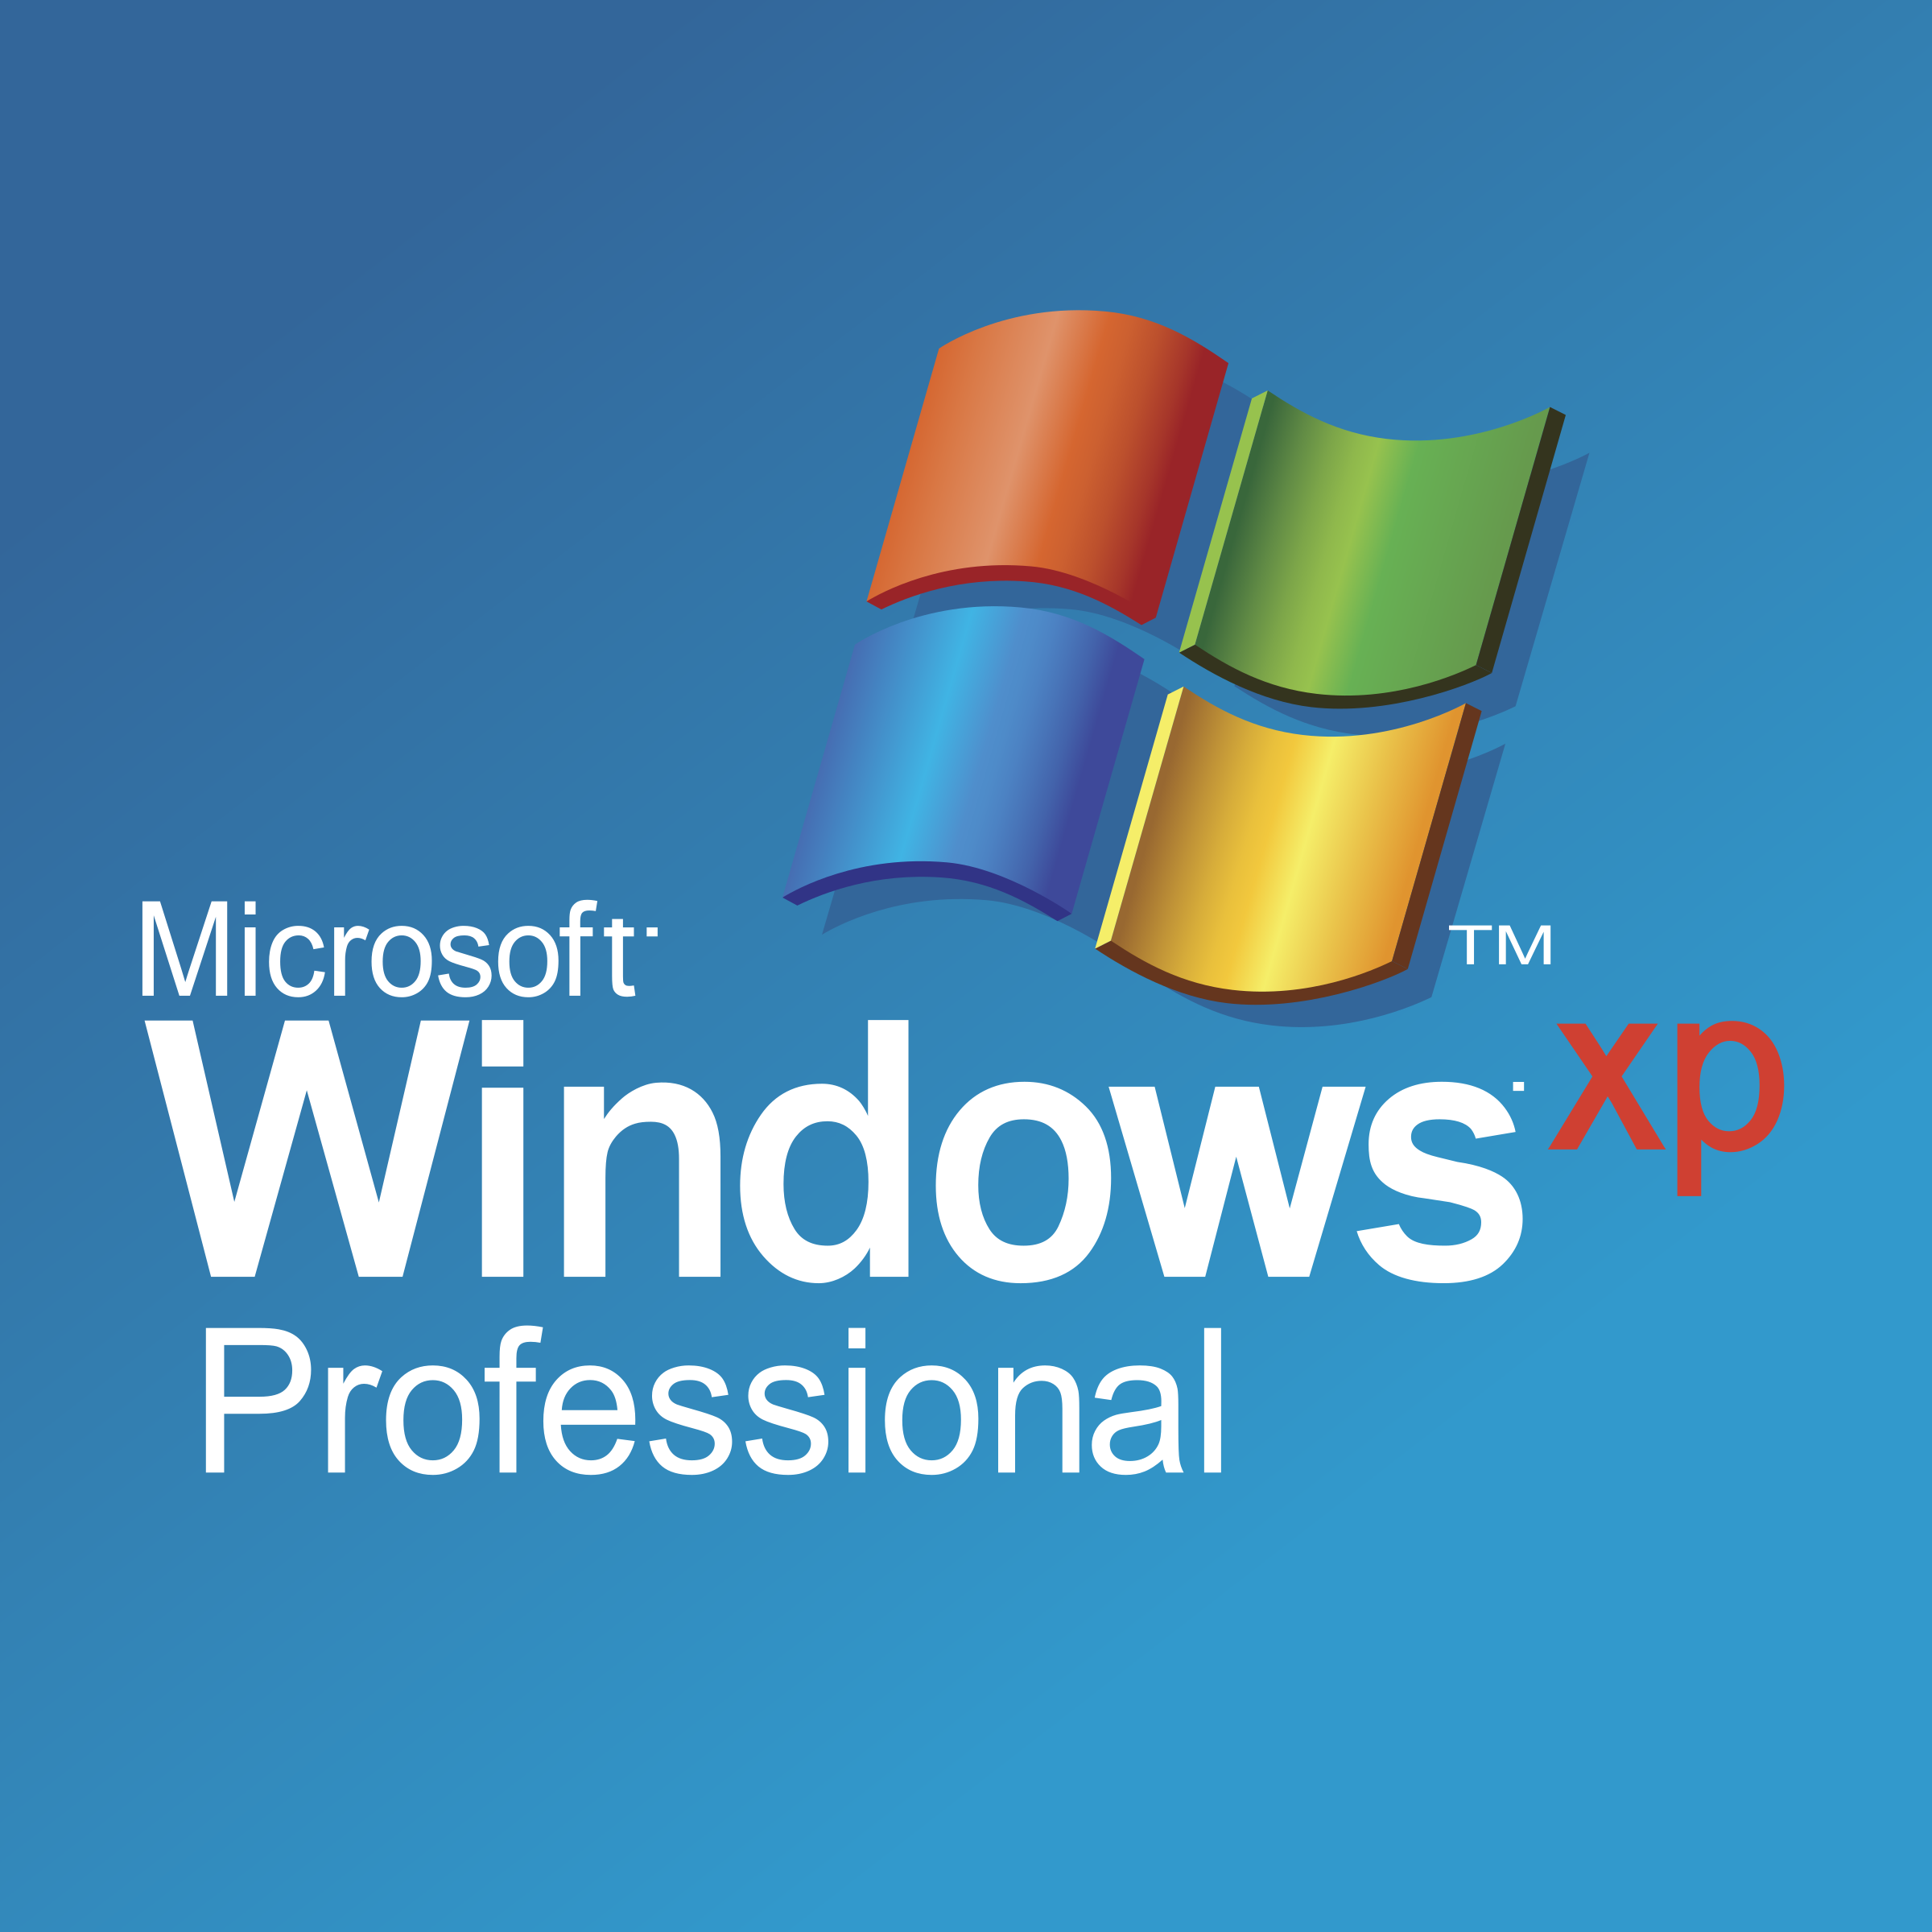 Microsoft Windows XP Professional Logo PNG Transparent & SVG Vector.